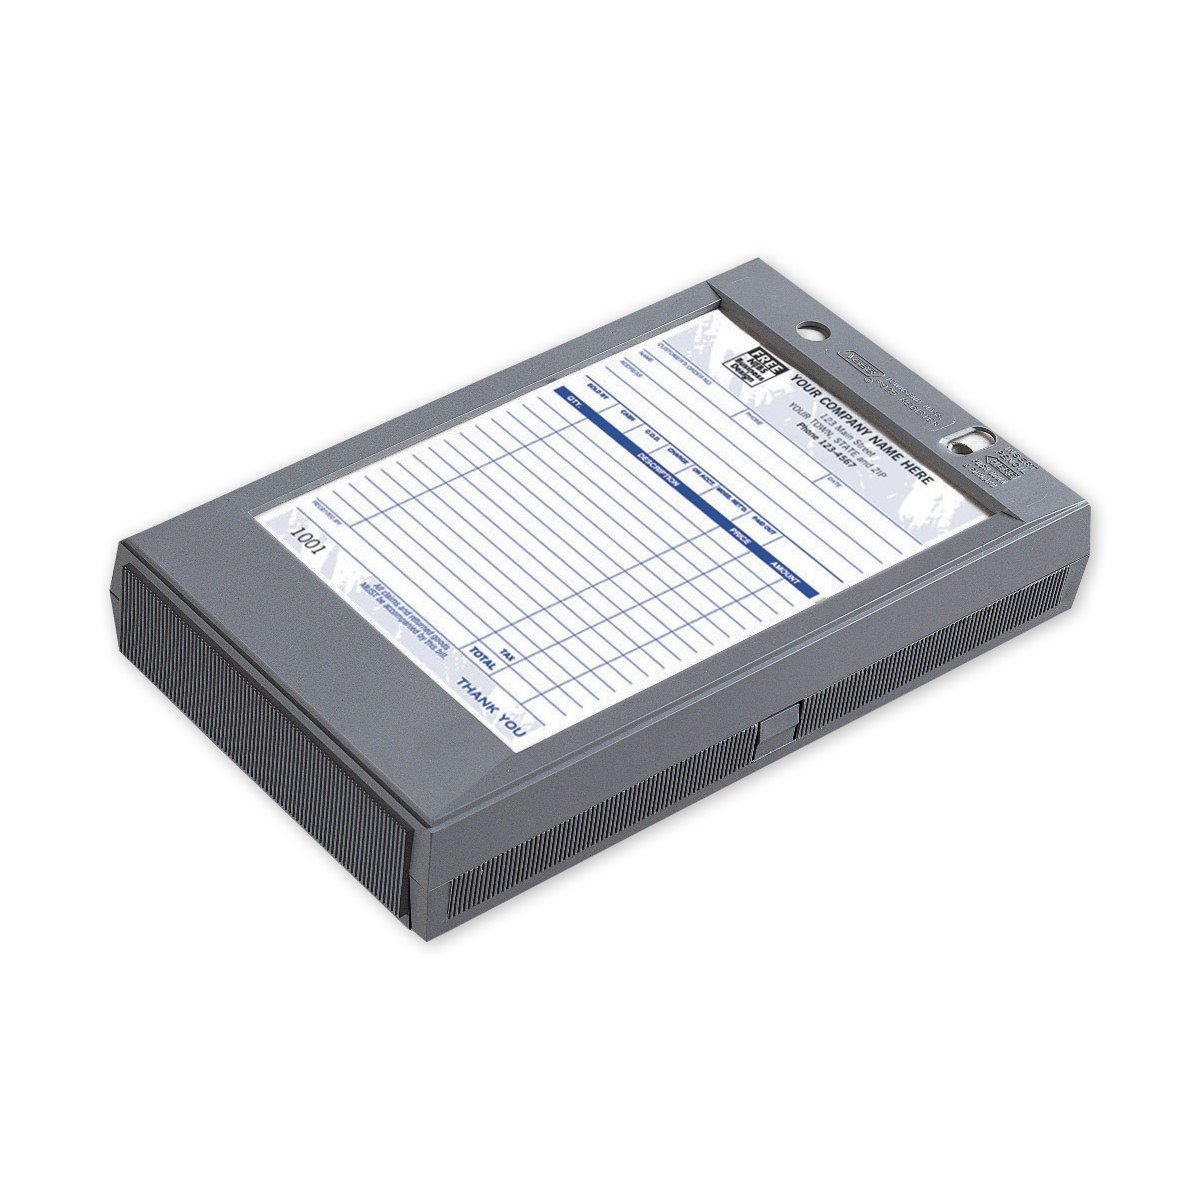 CheckSimple Portable Register - Plastic Register for 5 1/2 x 8 1/2 Forms (1 Qty) by CheckSimple